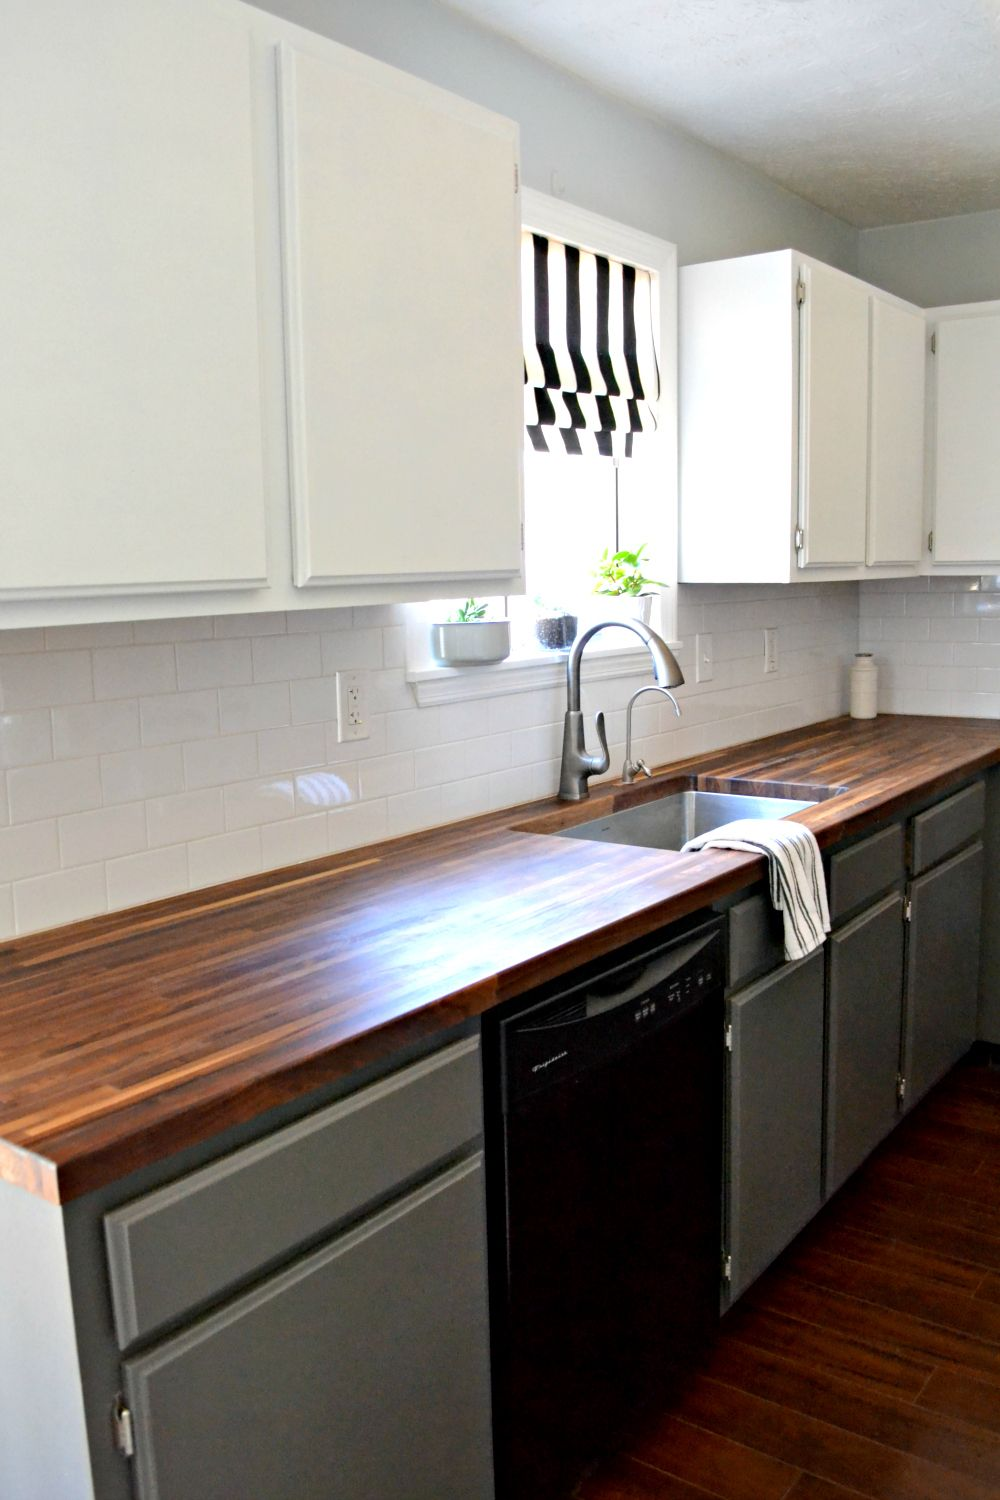 How to Paint Cabinets Without Sanding | Old kitchen ...